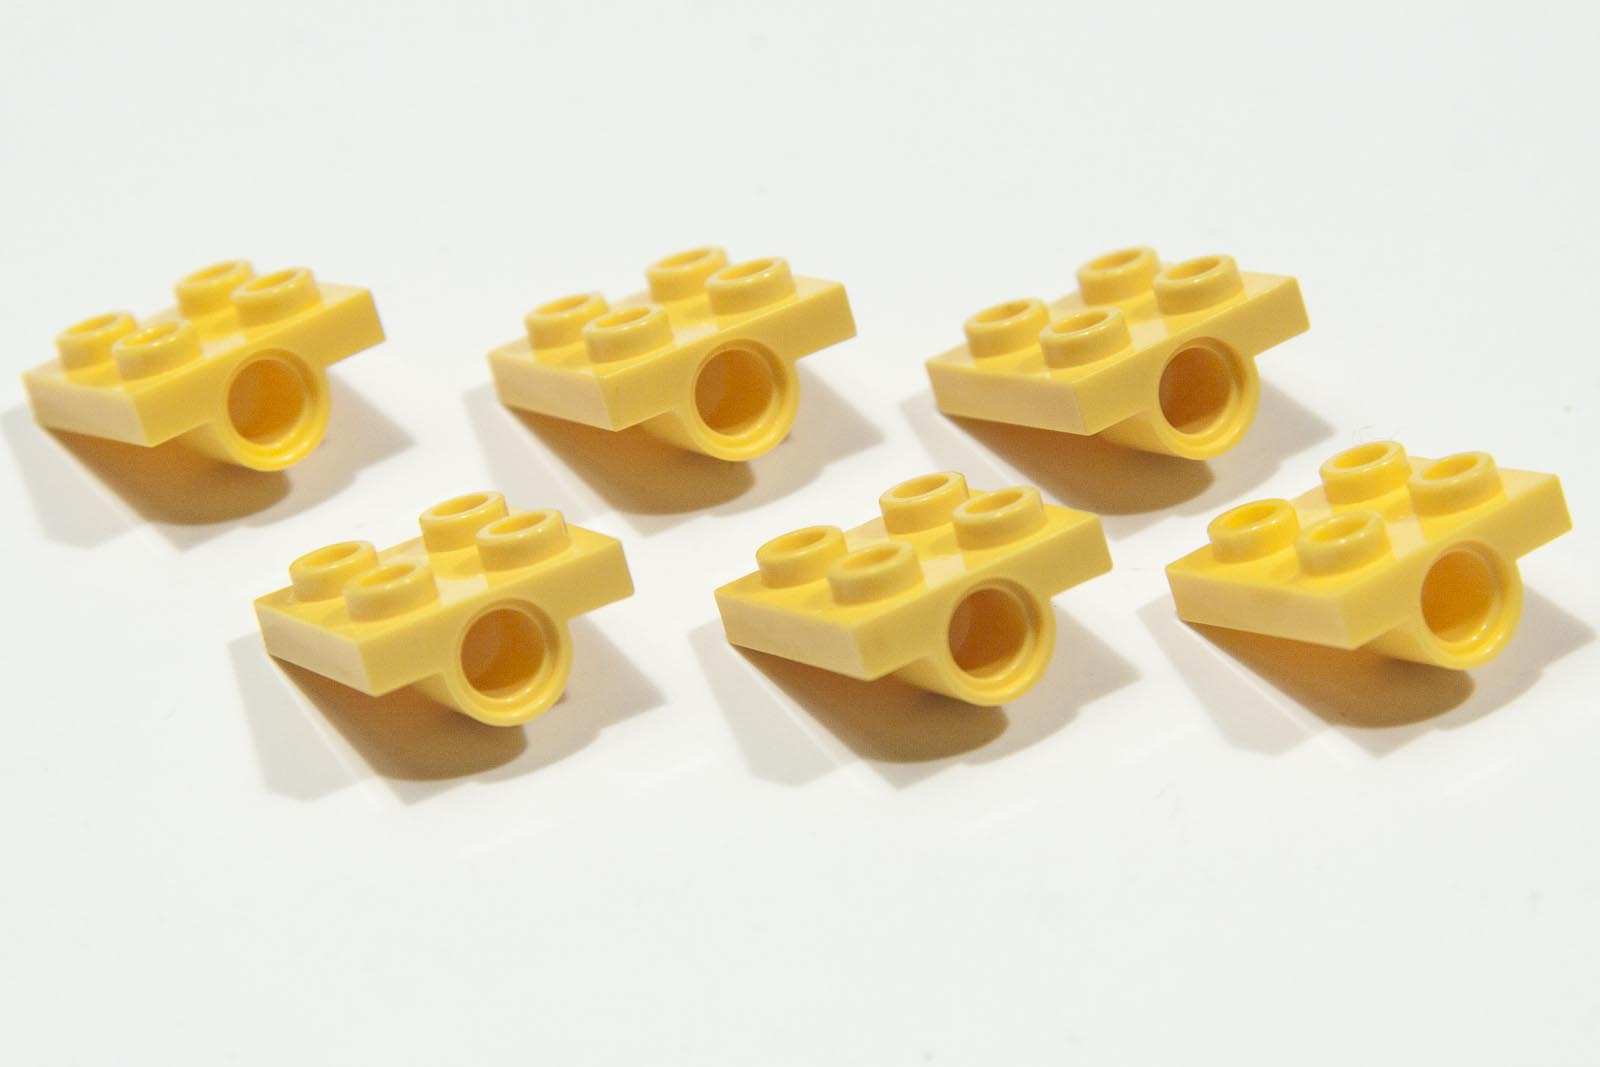 Lego Yellow 2444 Plate 2x2 with Hole